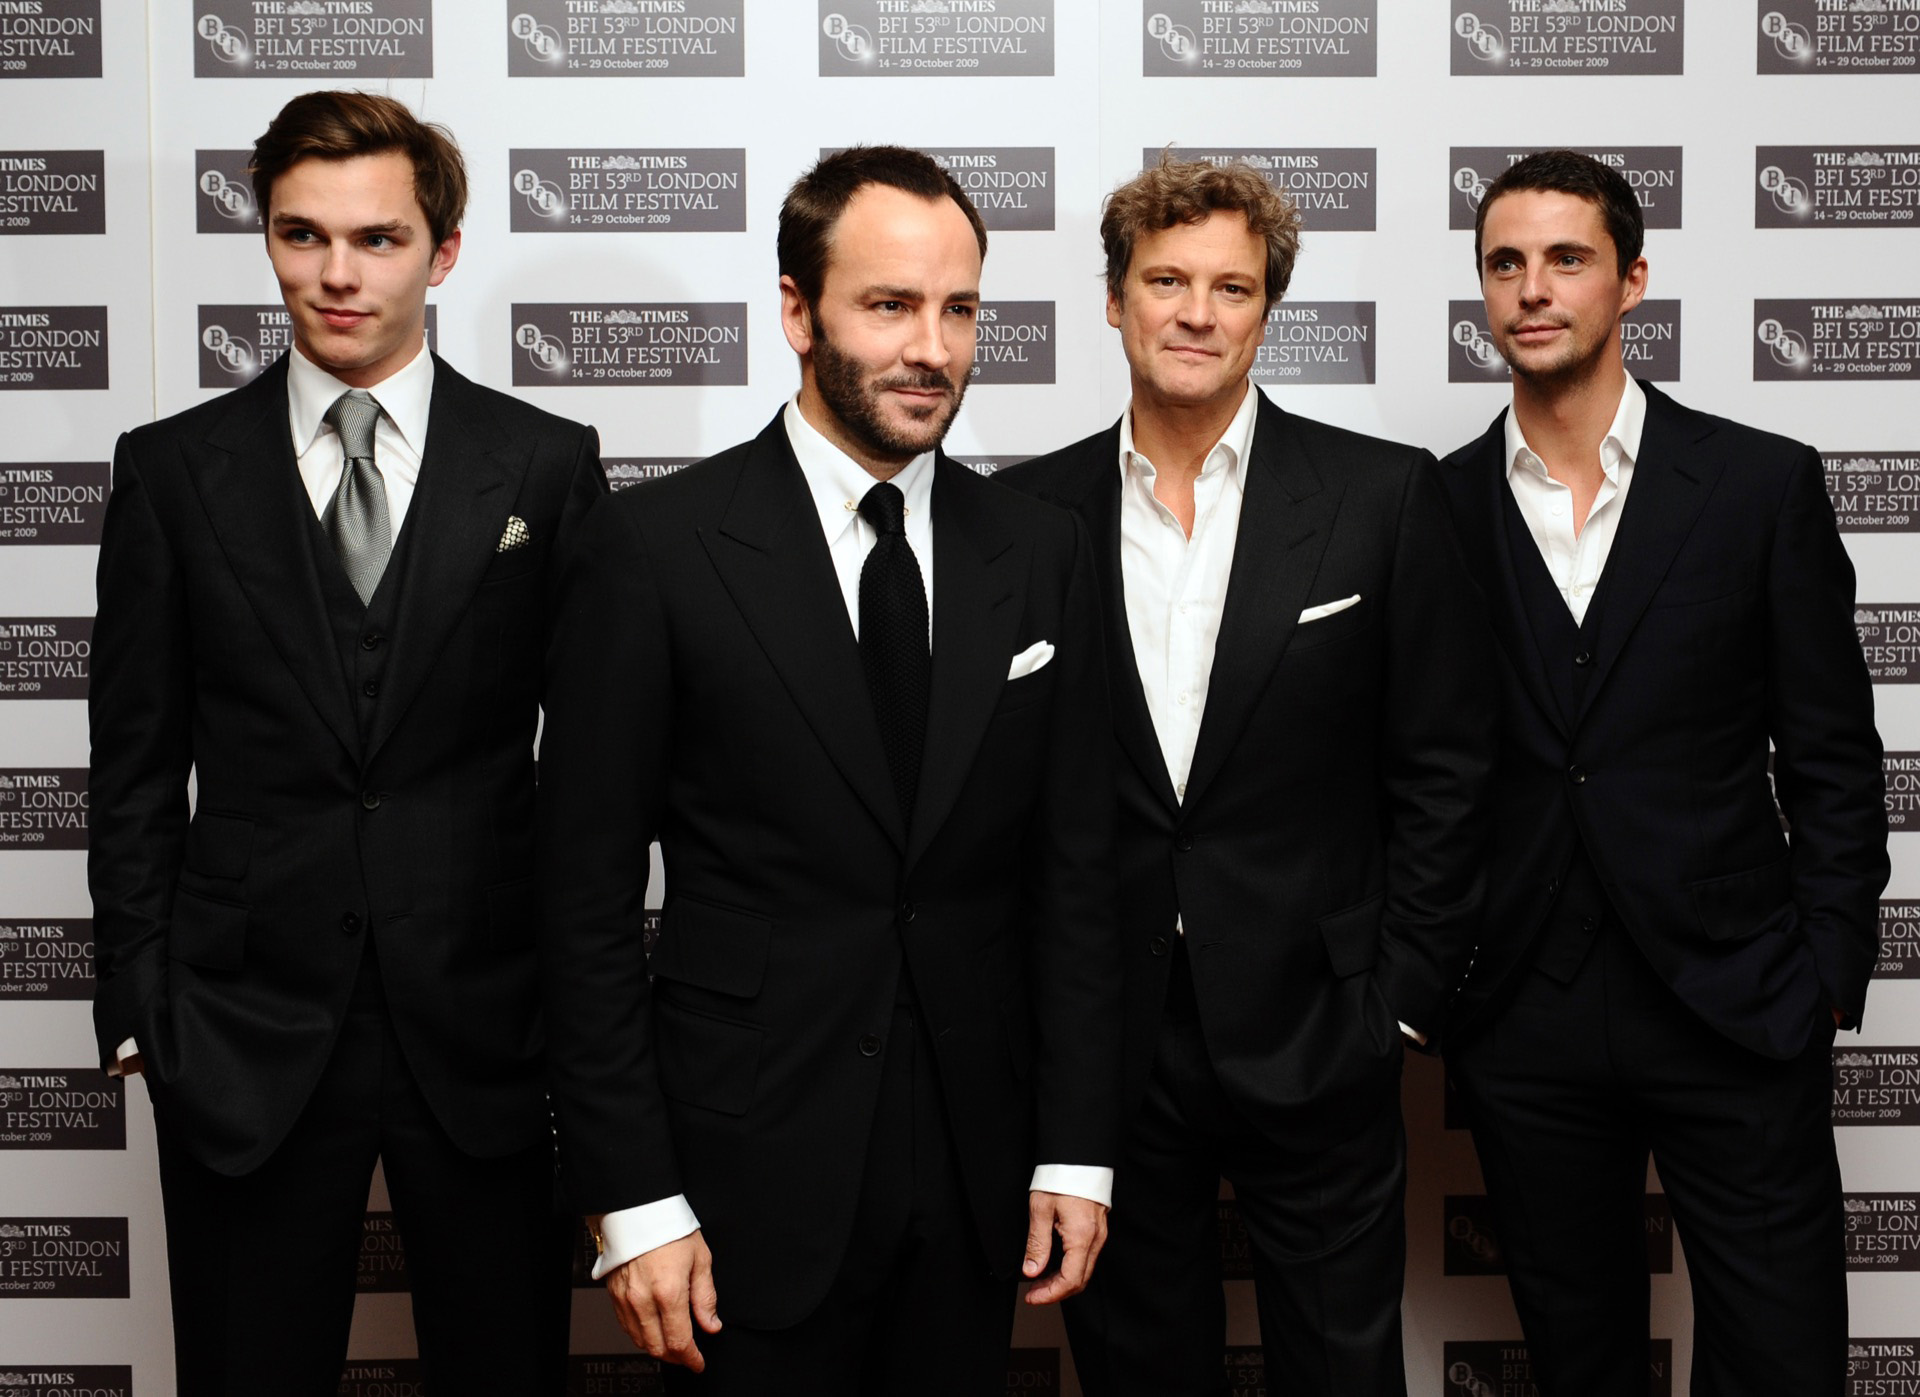 (left to right) Nicholas Hoult, Tom Ford, Colin Firth and Matthew Goode at the premiere of the new film A Single Man, at the Vue Cinema in central London, part of the Times BFI 53rd London Film Festival. Picture date: Friday October 16 2009. Photo credit should read: Ian West/PA Wire